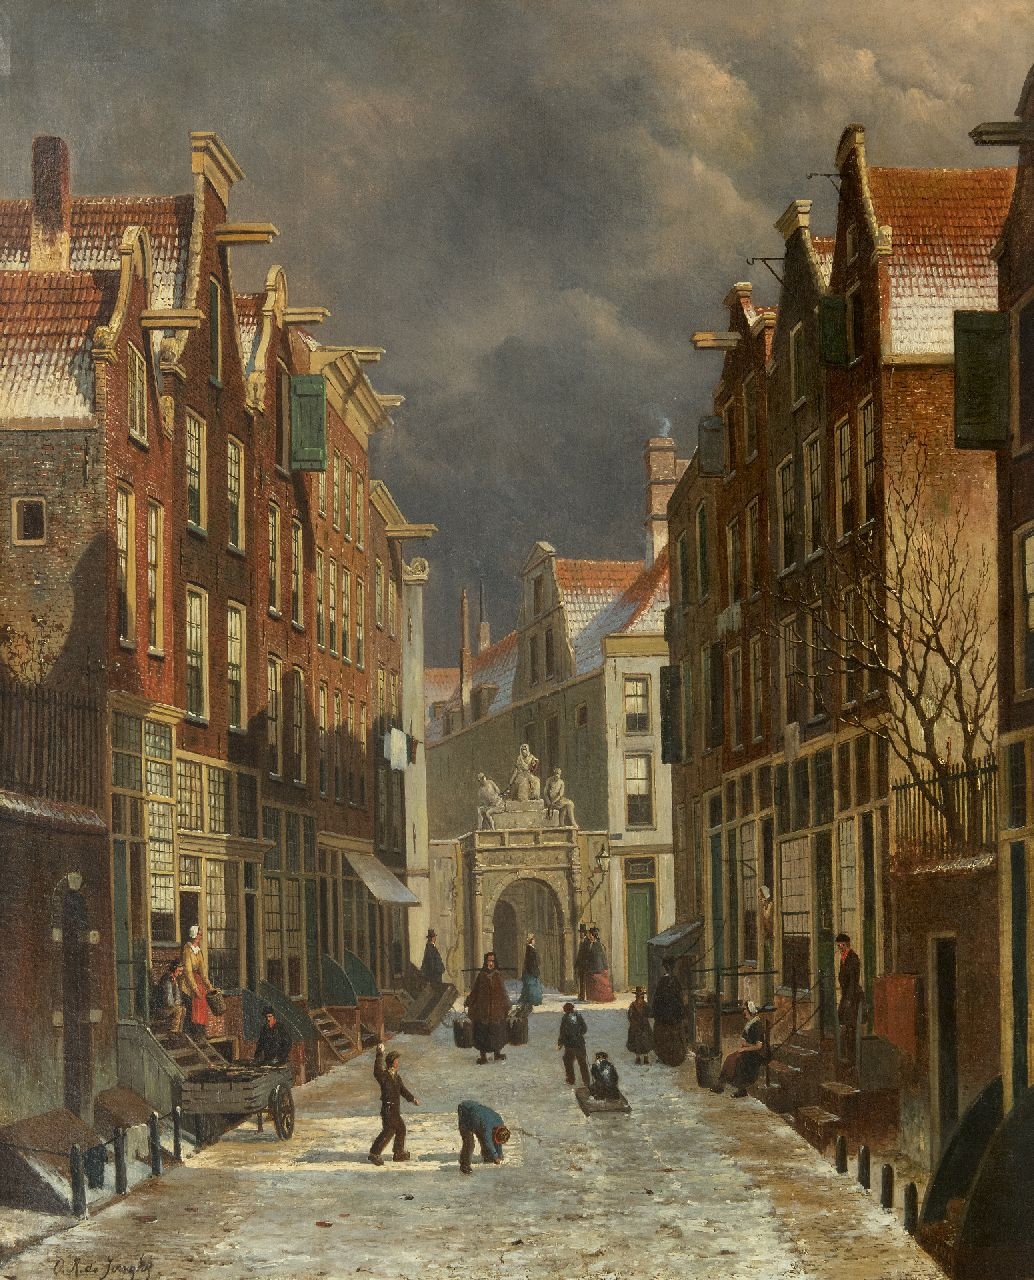 Jongh O.R. de | Oene Romkes de Jongh | Paintings offered for sale | View on the Voetboogstraat with the Rasphuispoort, Amsterdam, oil on canvas 86.8 x 70.4 cm, signed l.l.